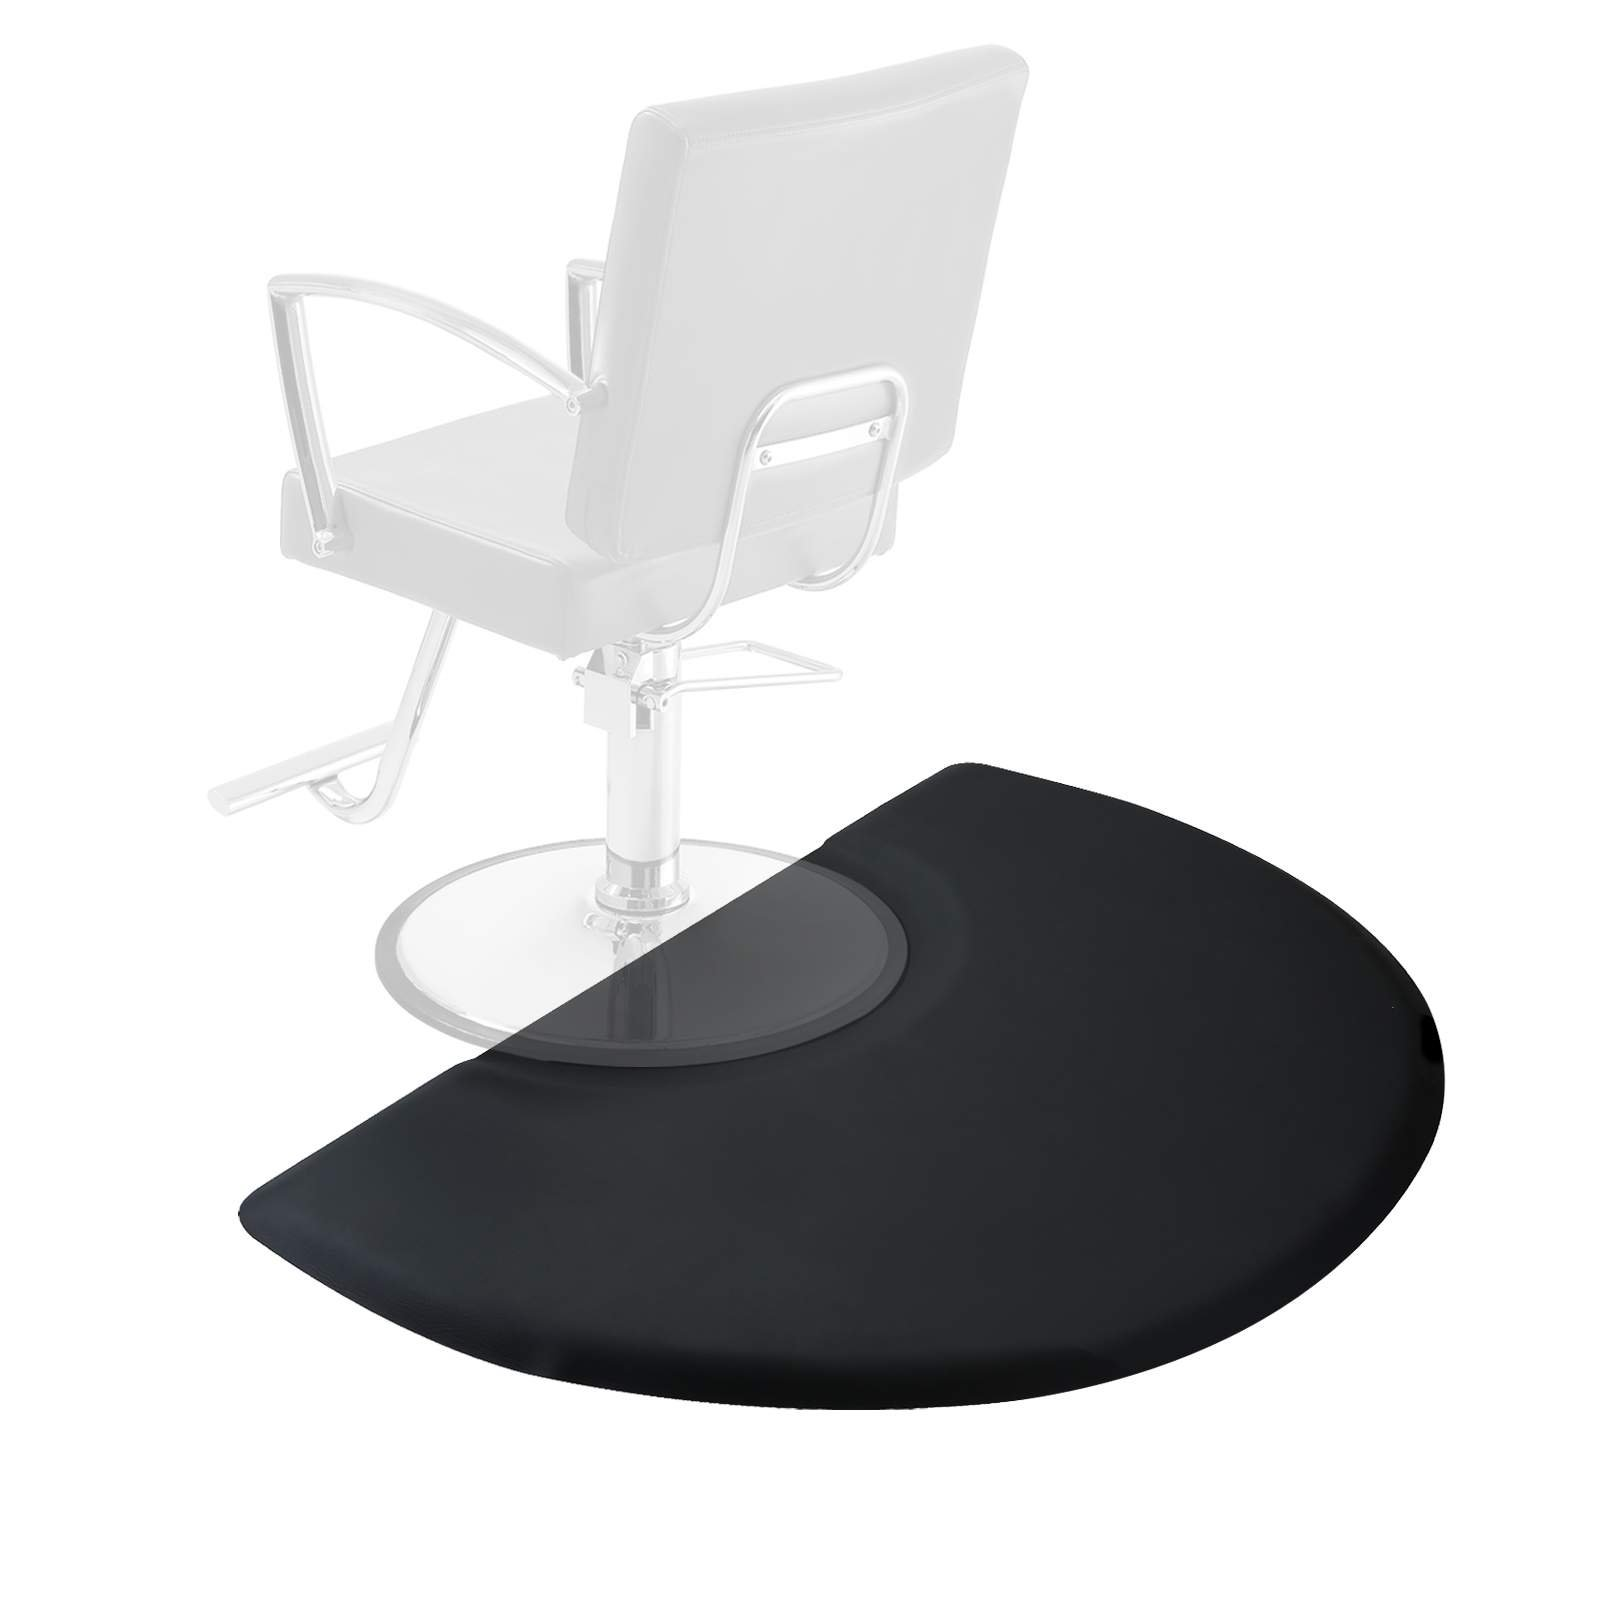 Saloniture 3 ft. x 4 ft. Salon & Barber Shop Chair Anti-Fatigue Mat - Black Semi Circle - 5/8 in. Thick